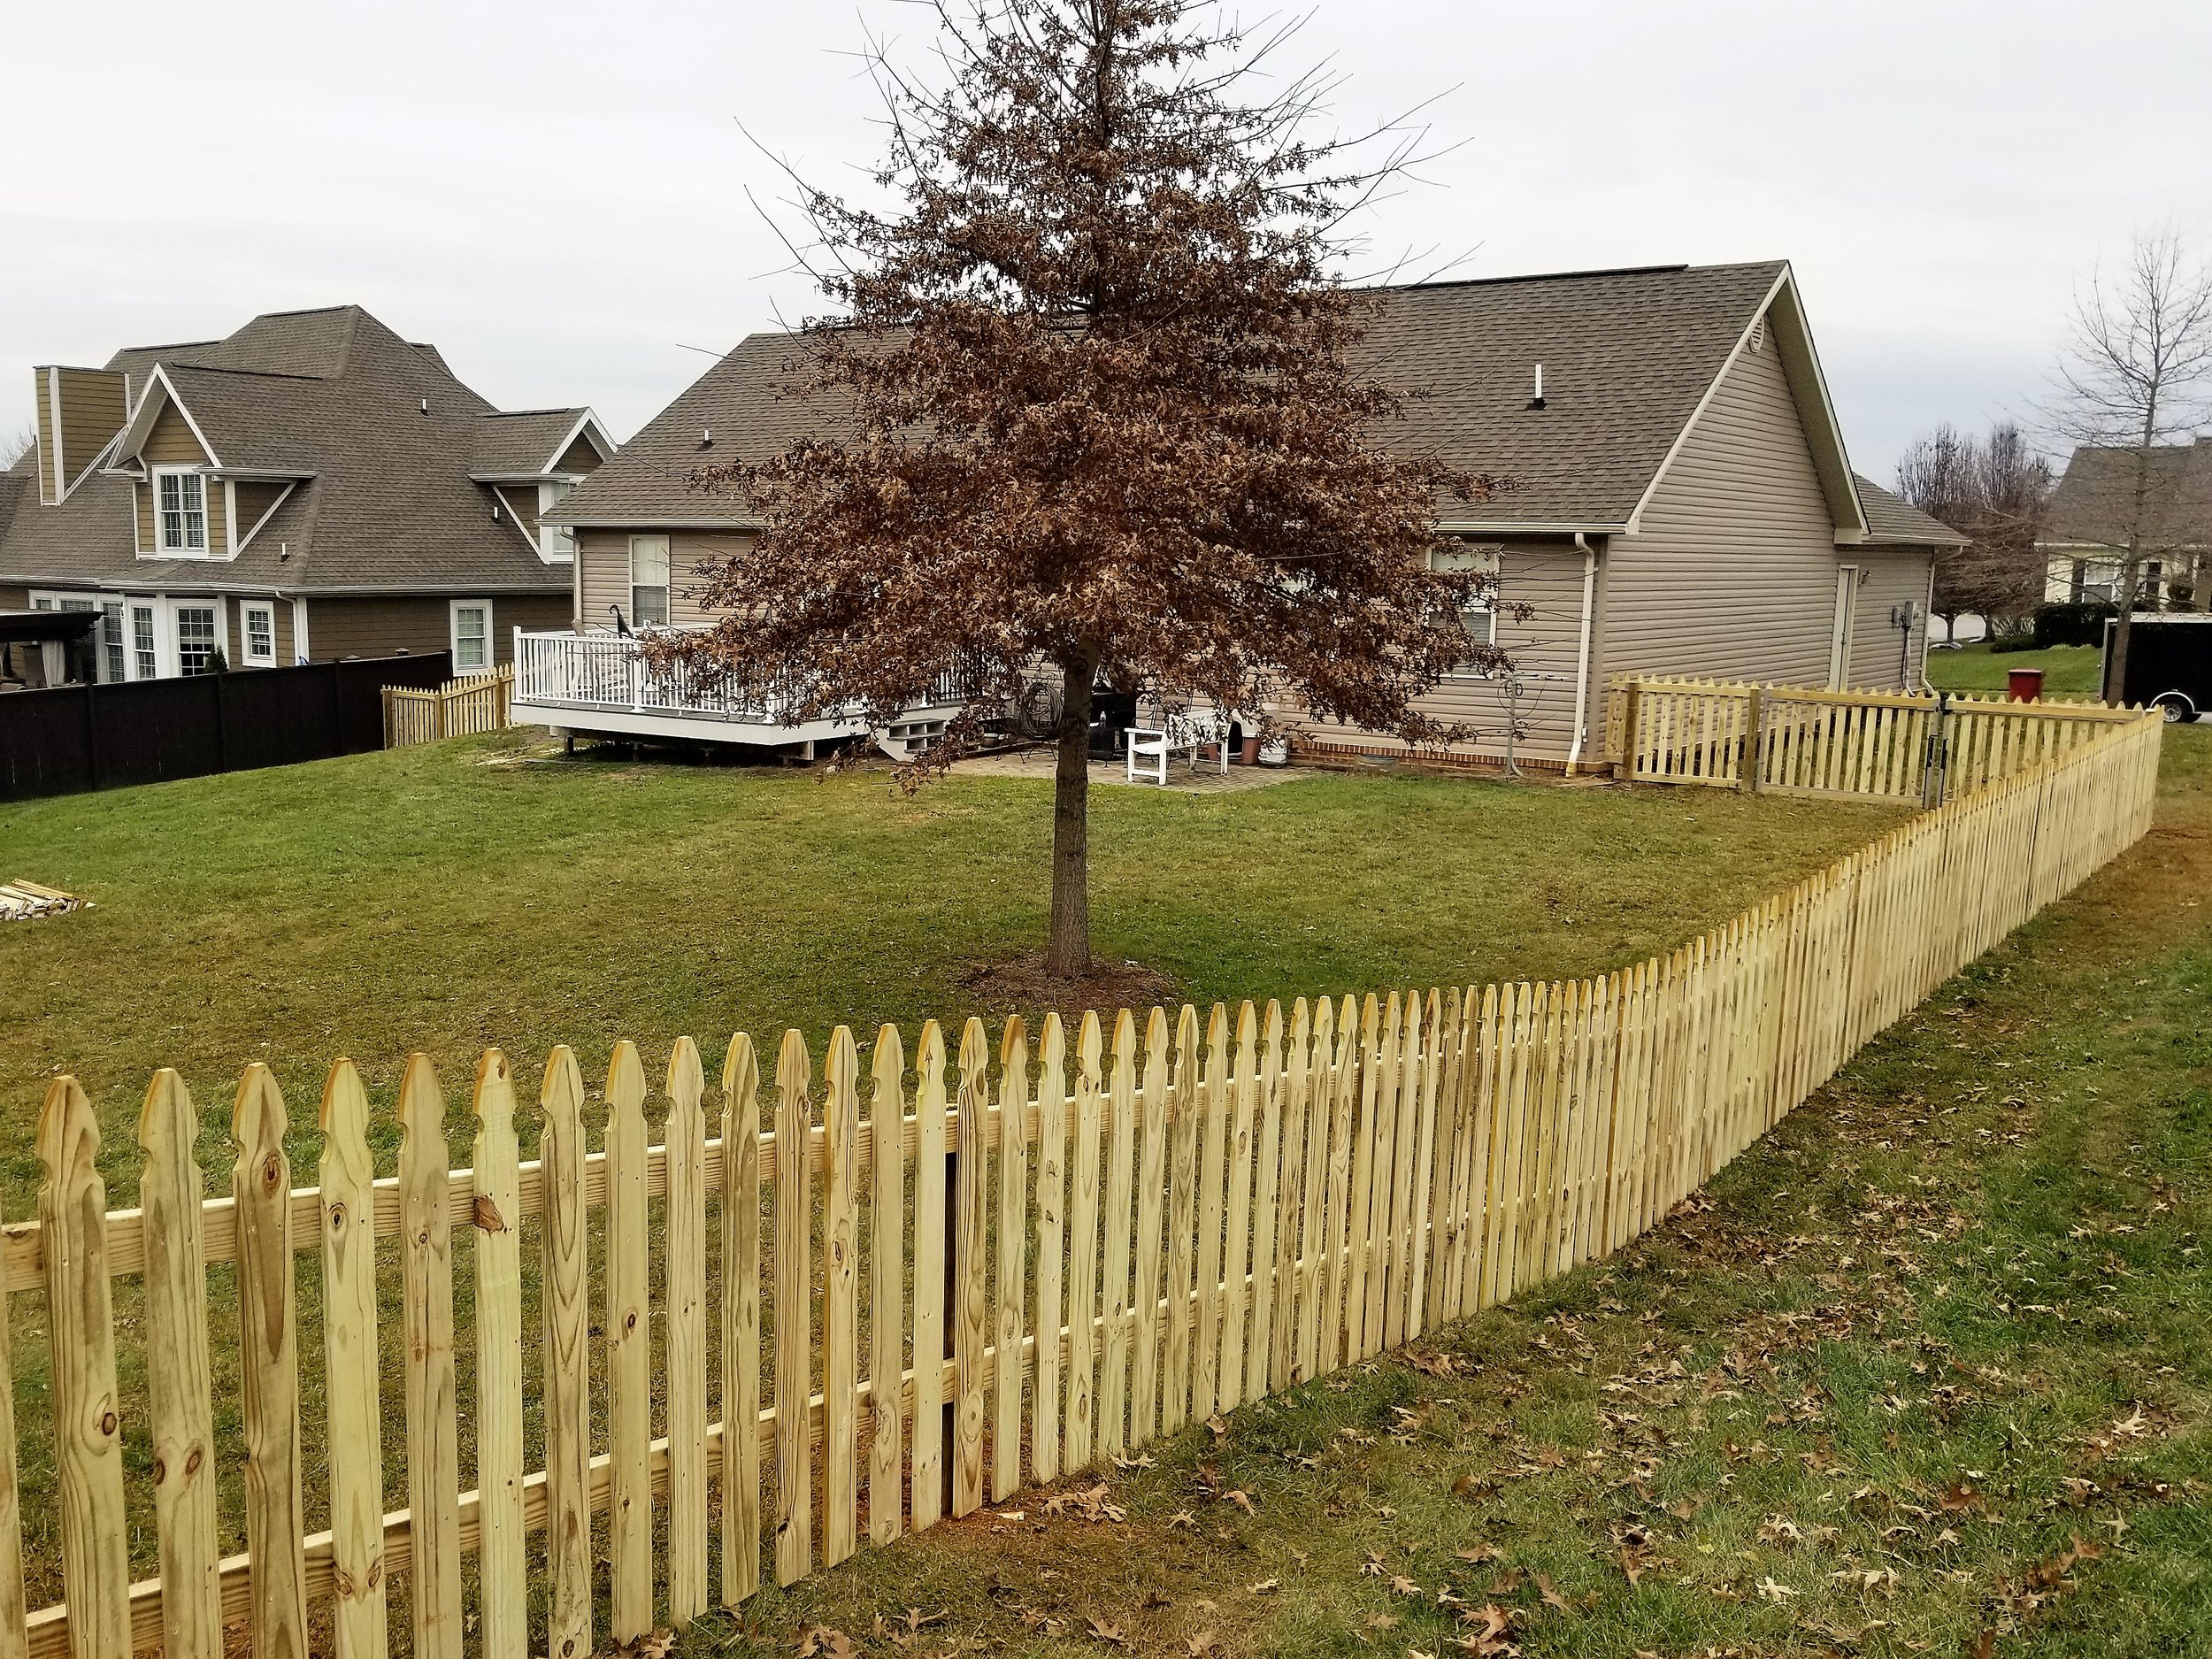 New Picket Wood Fence 330 Feet (Johnson City, Tn)